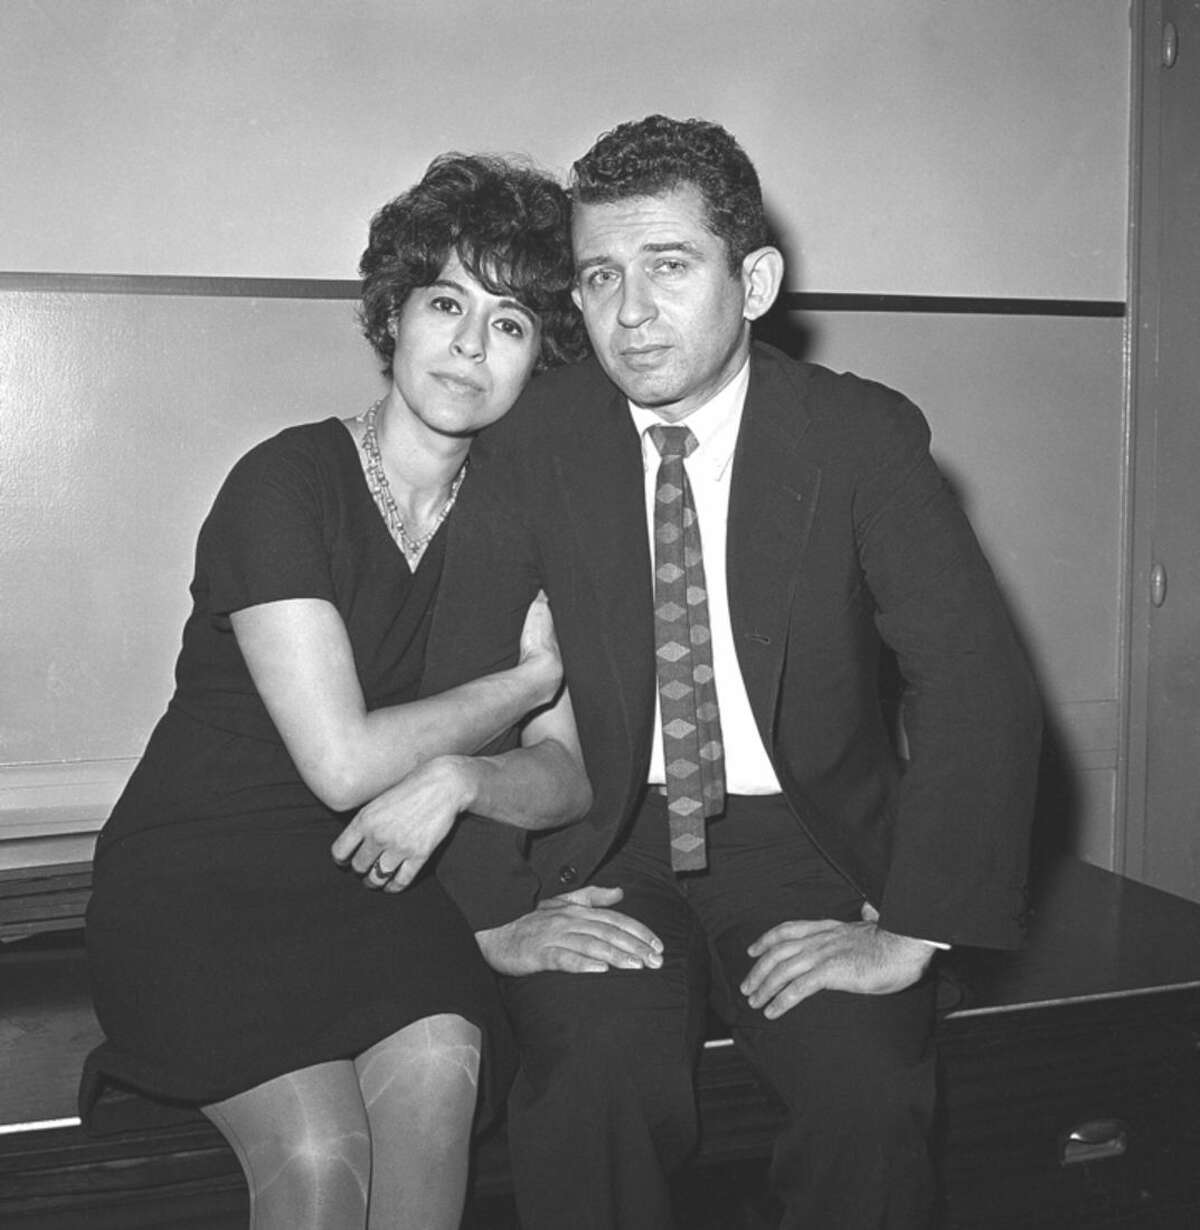 AP file photo/Anthony Camerano In this Dec. 29, 1960, file photo, author Norman Mailer and his wife, Adele, sit together in court as Norman Mailer answers an assault charge that he stabbed Adele after a party at their apartment.